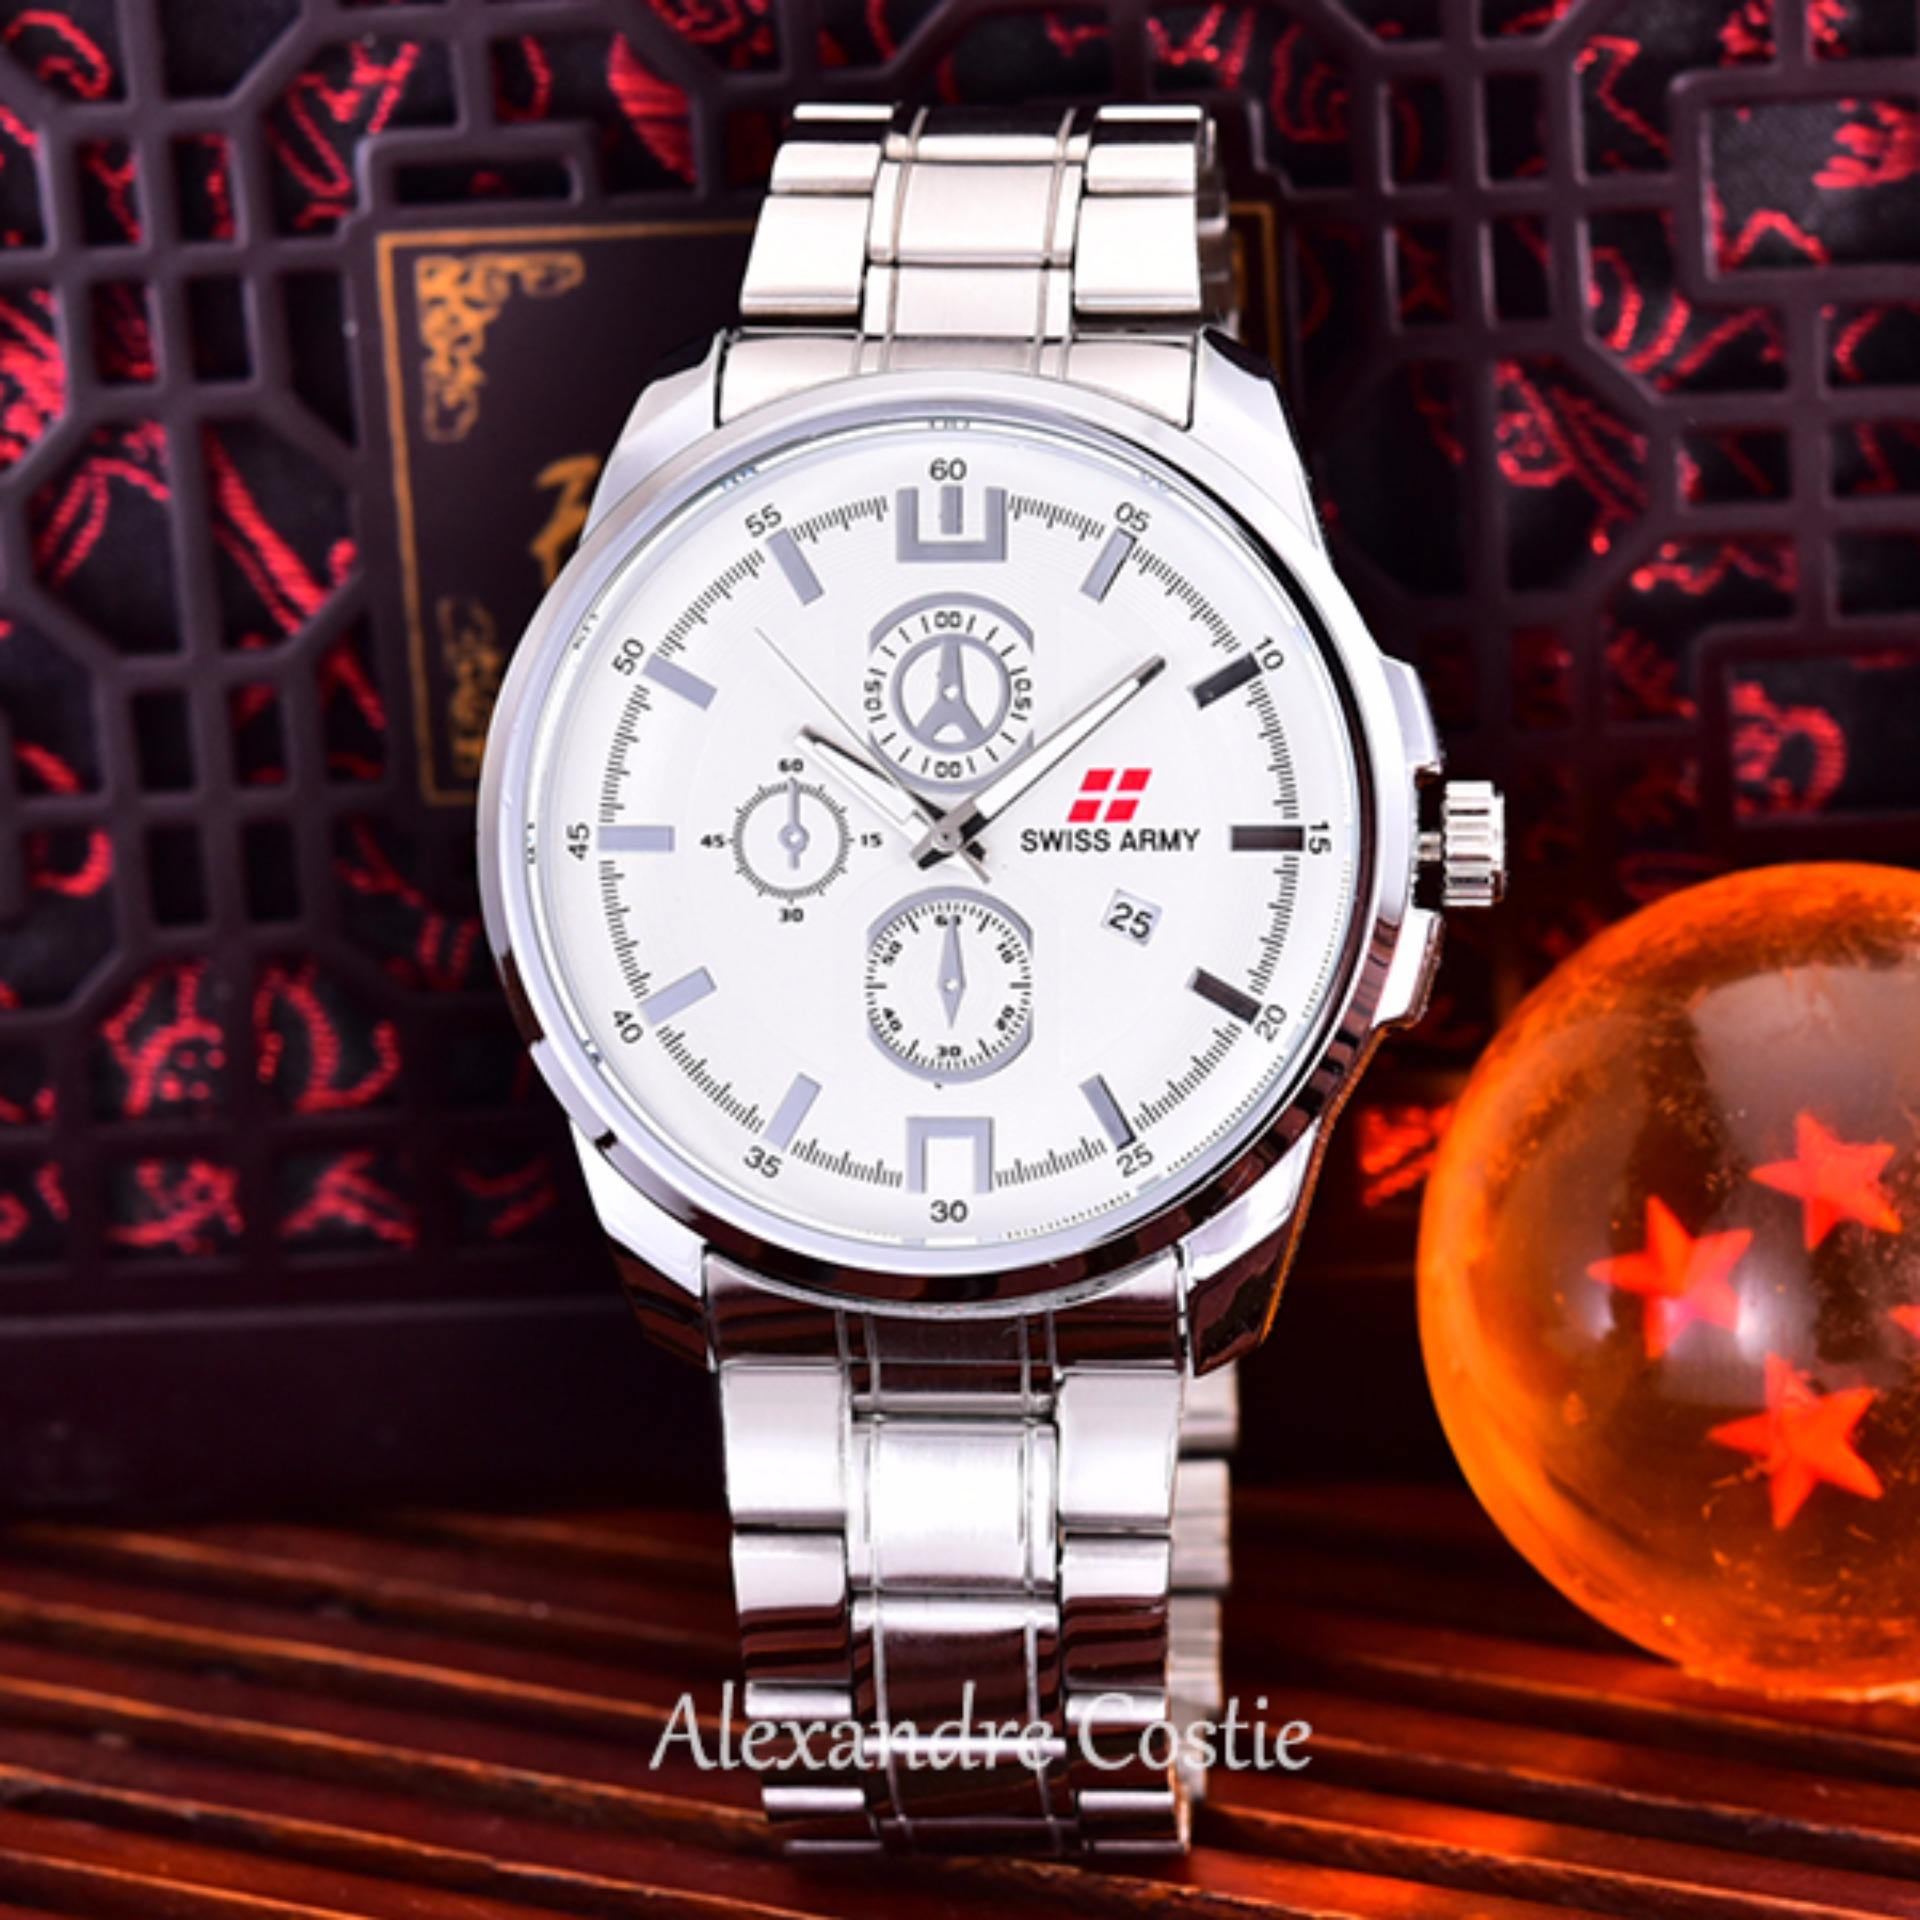 ... Swiss Army - Jam Tangan Pria - Body Silver- White Dial - Stainless Stell Band ...